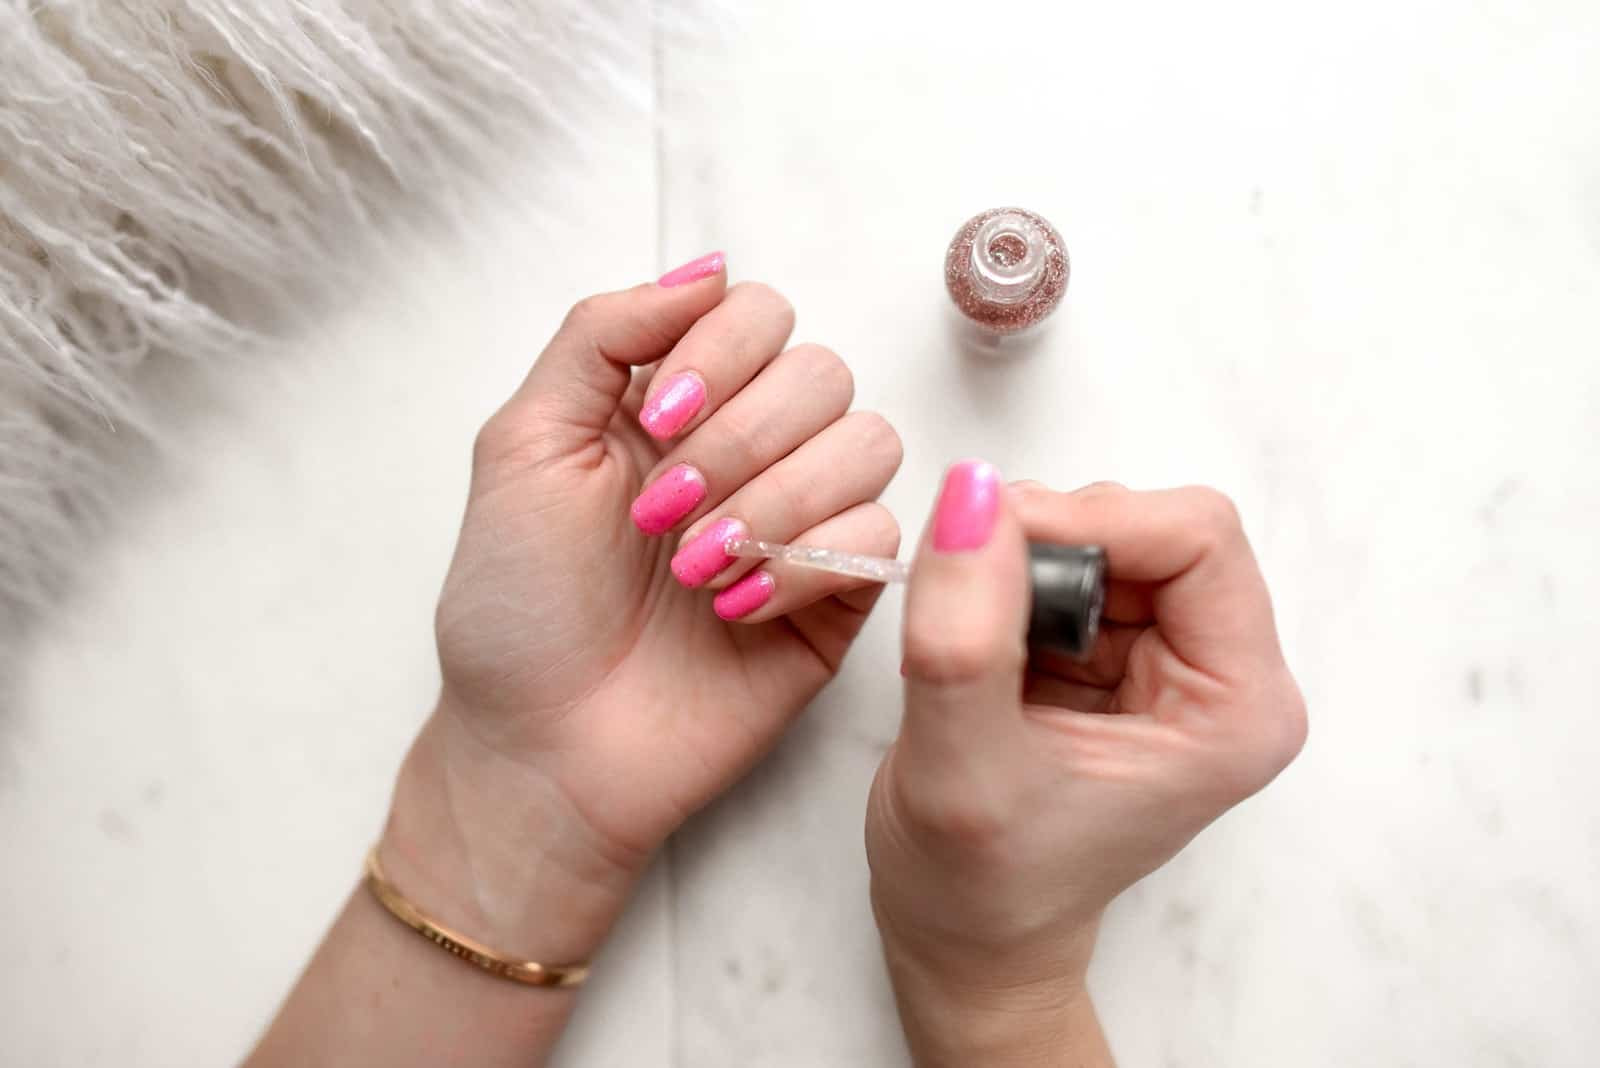 Applying glitter nail polish to nails